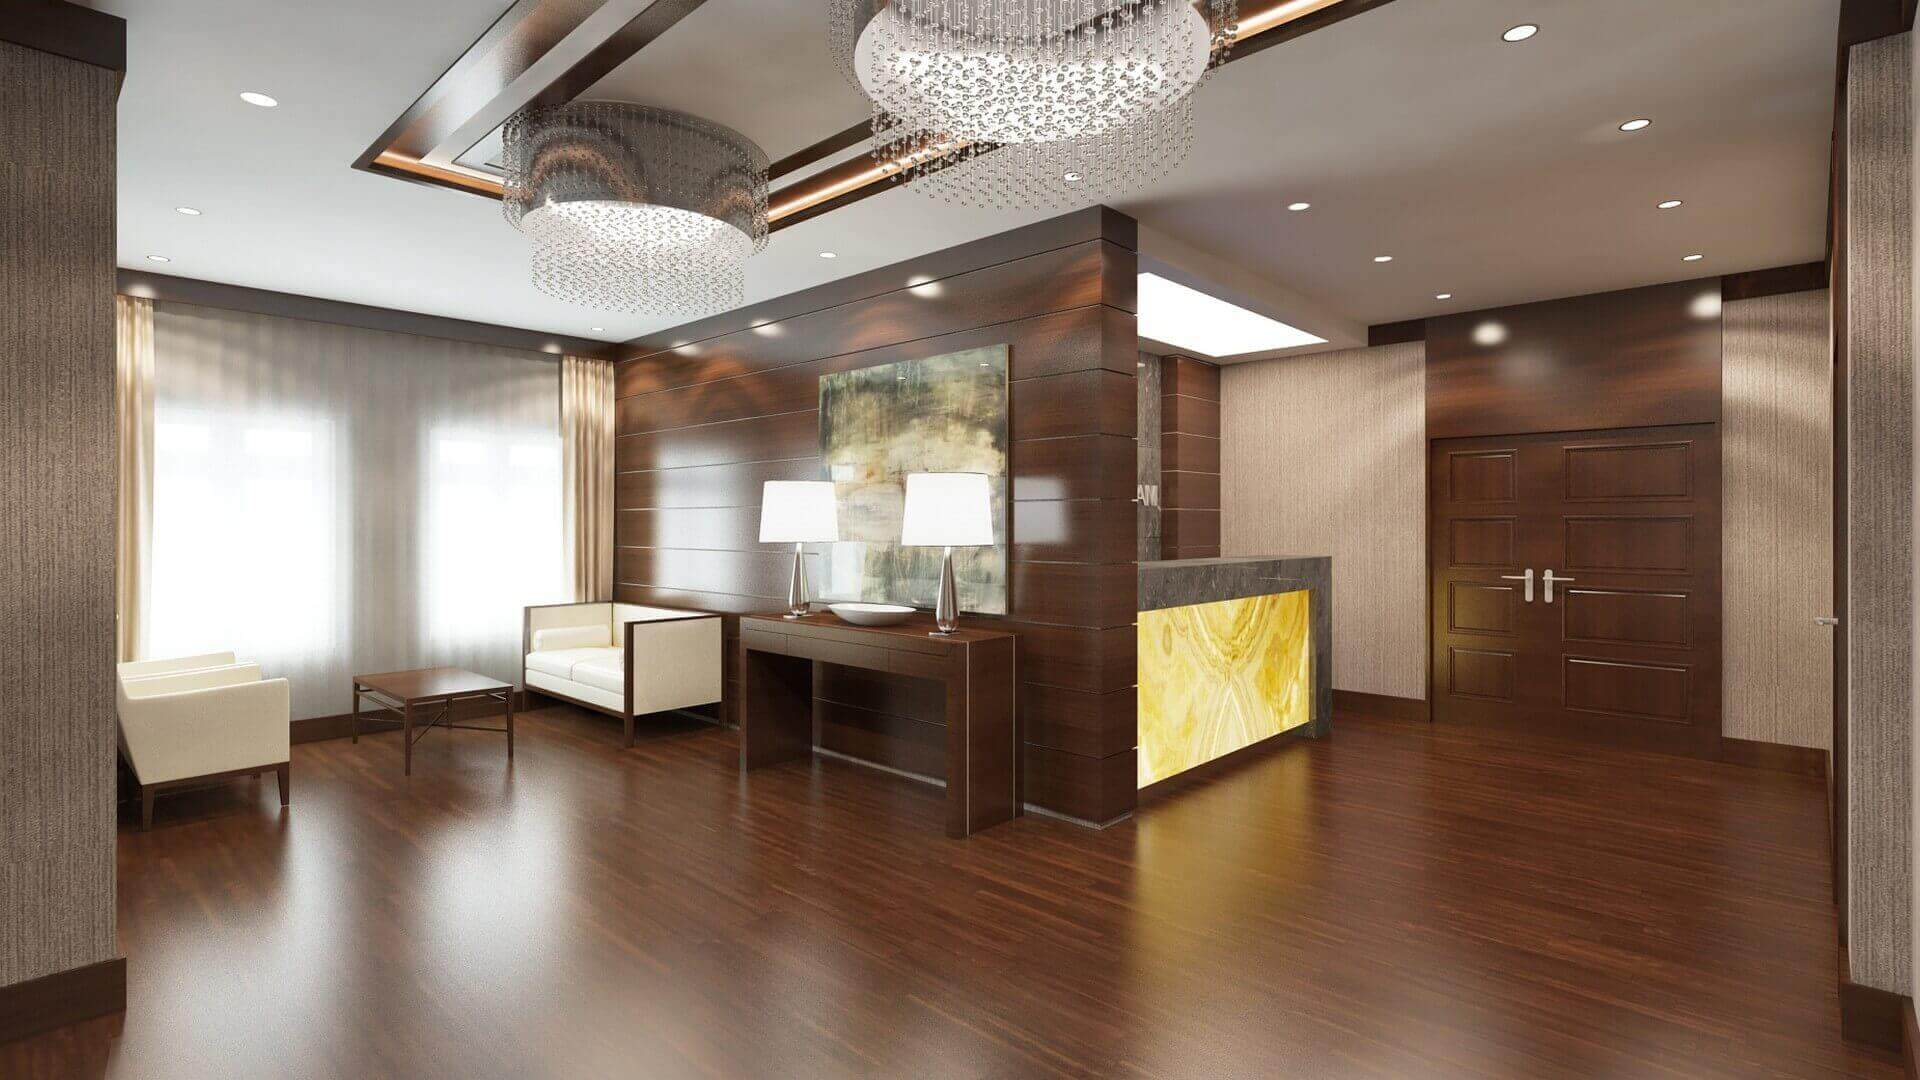 Lobby design 2148 Oz Orman-Is Guesthouse Hotels